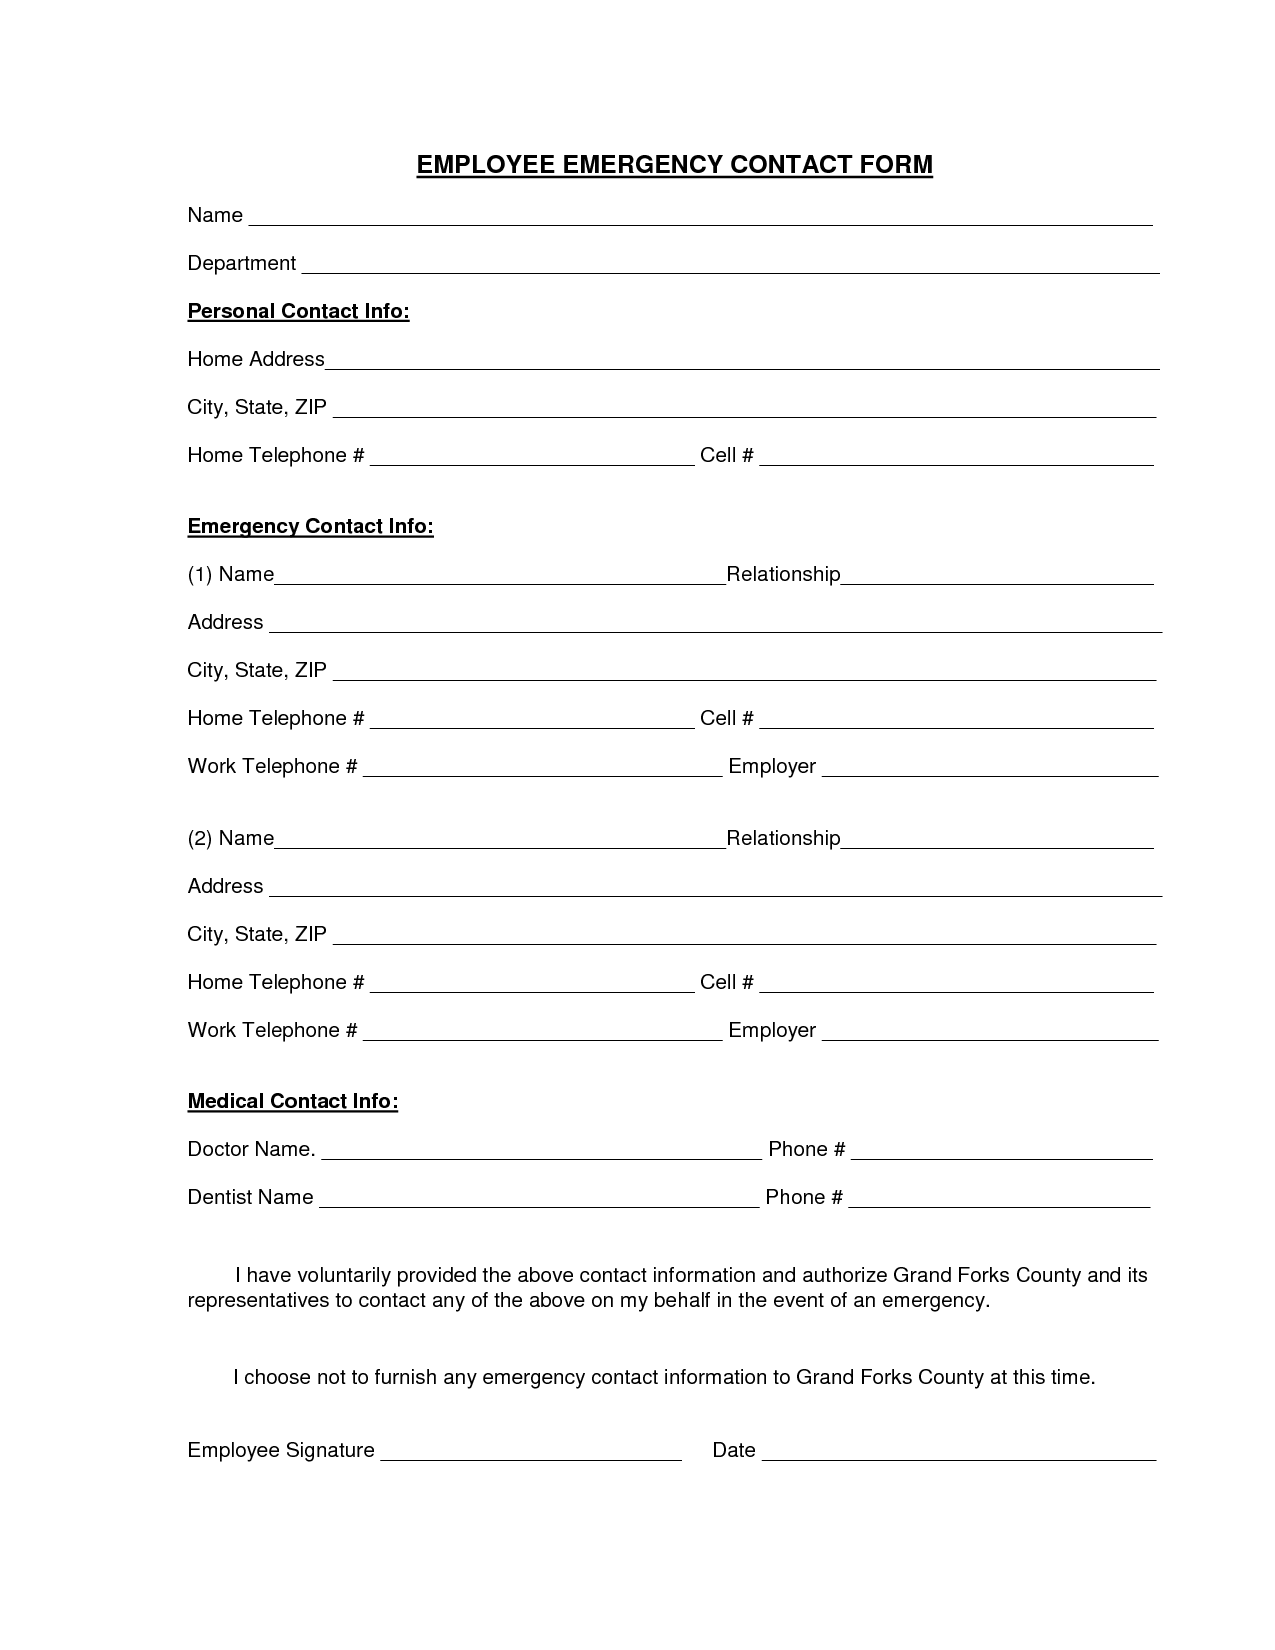 Download A Free Emergency Contact Form And Emergency Card Template To Help You Customize And